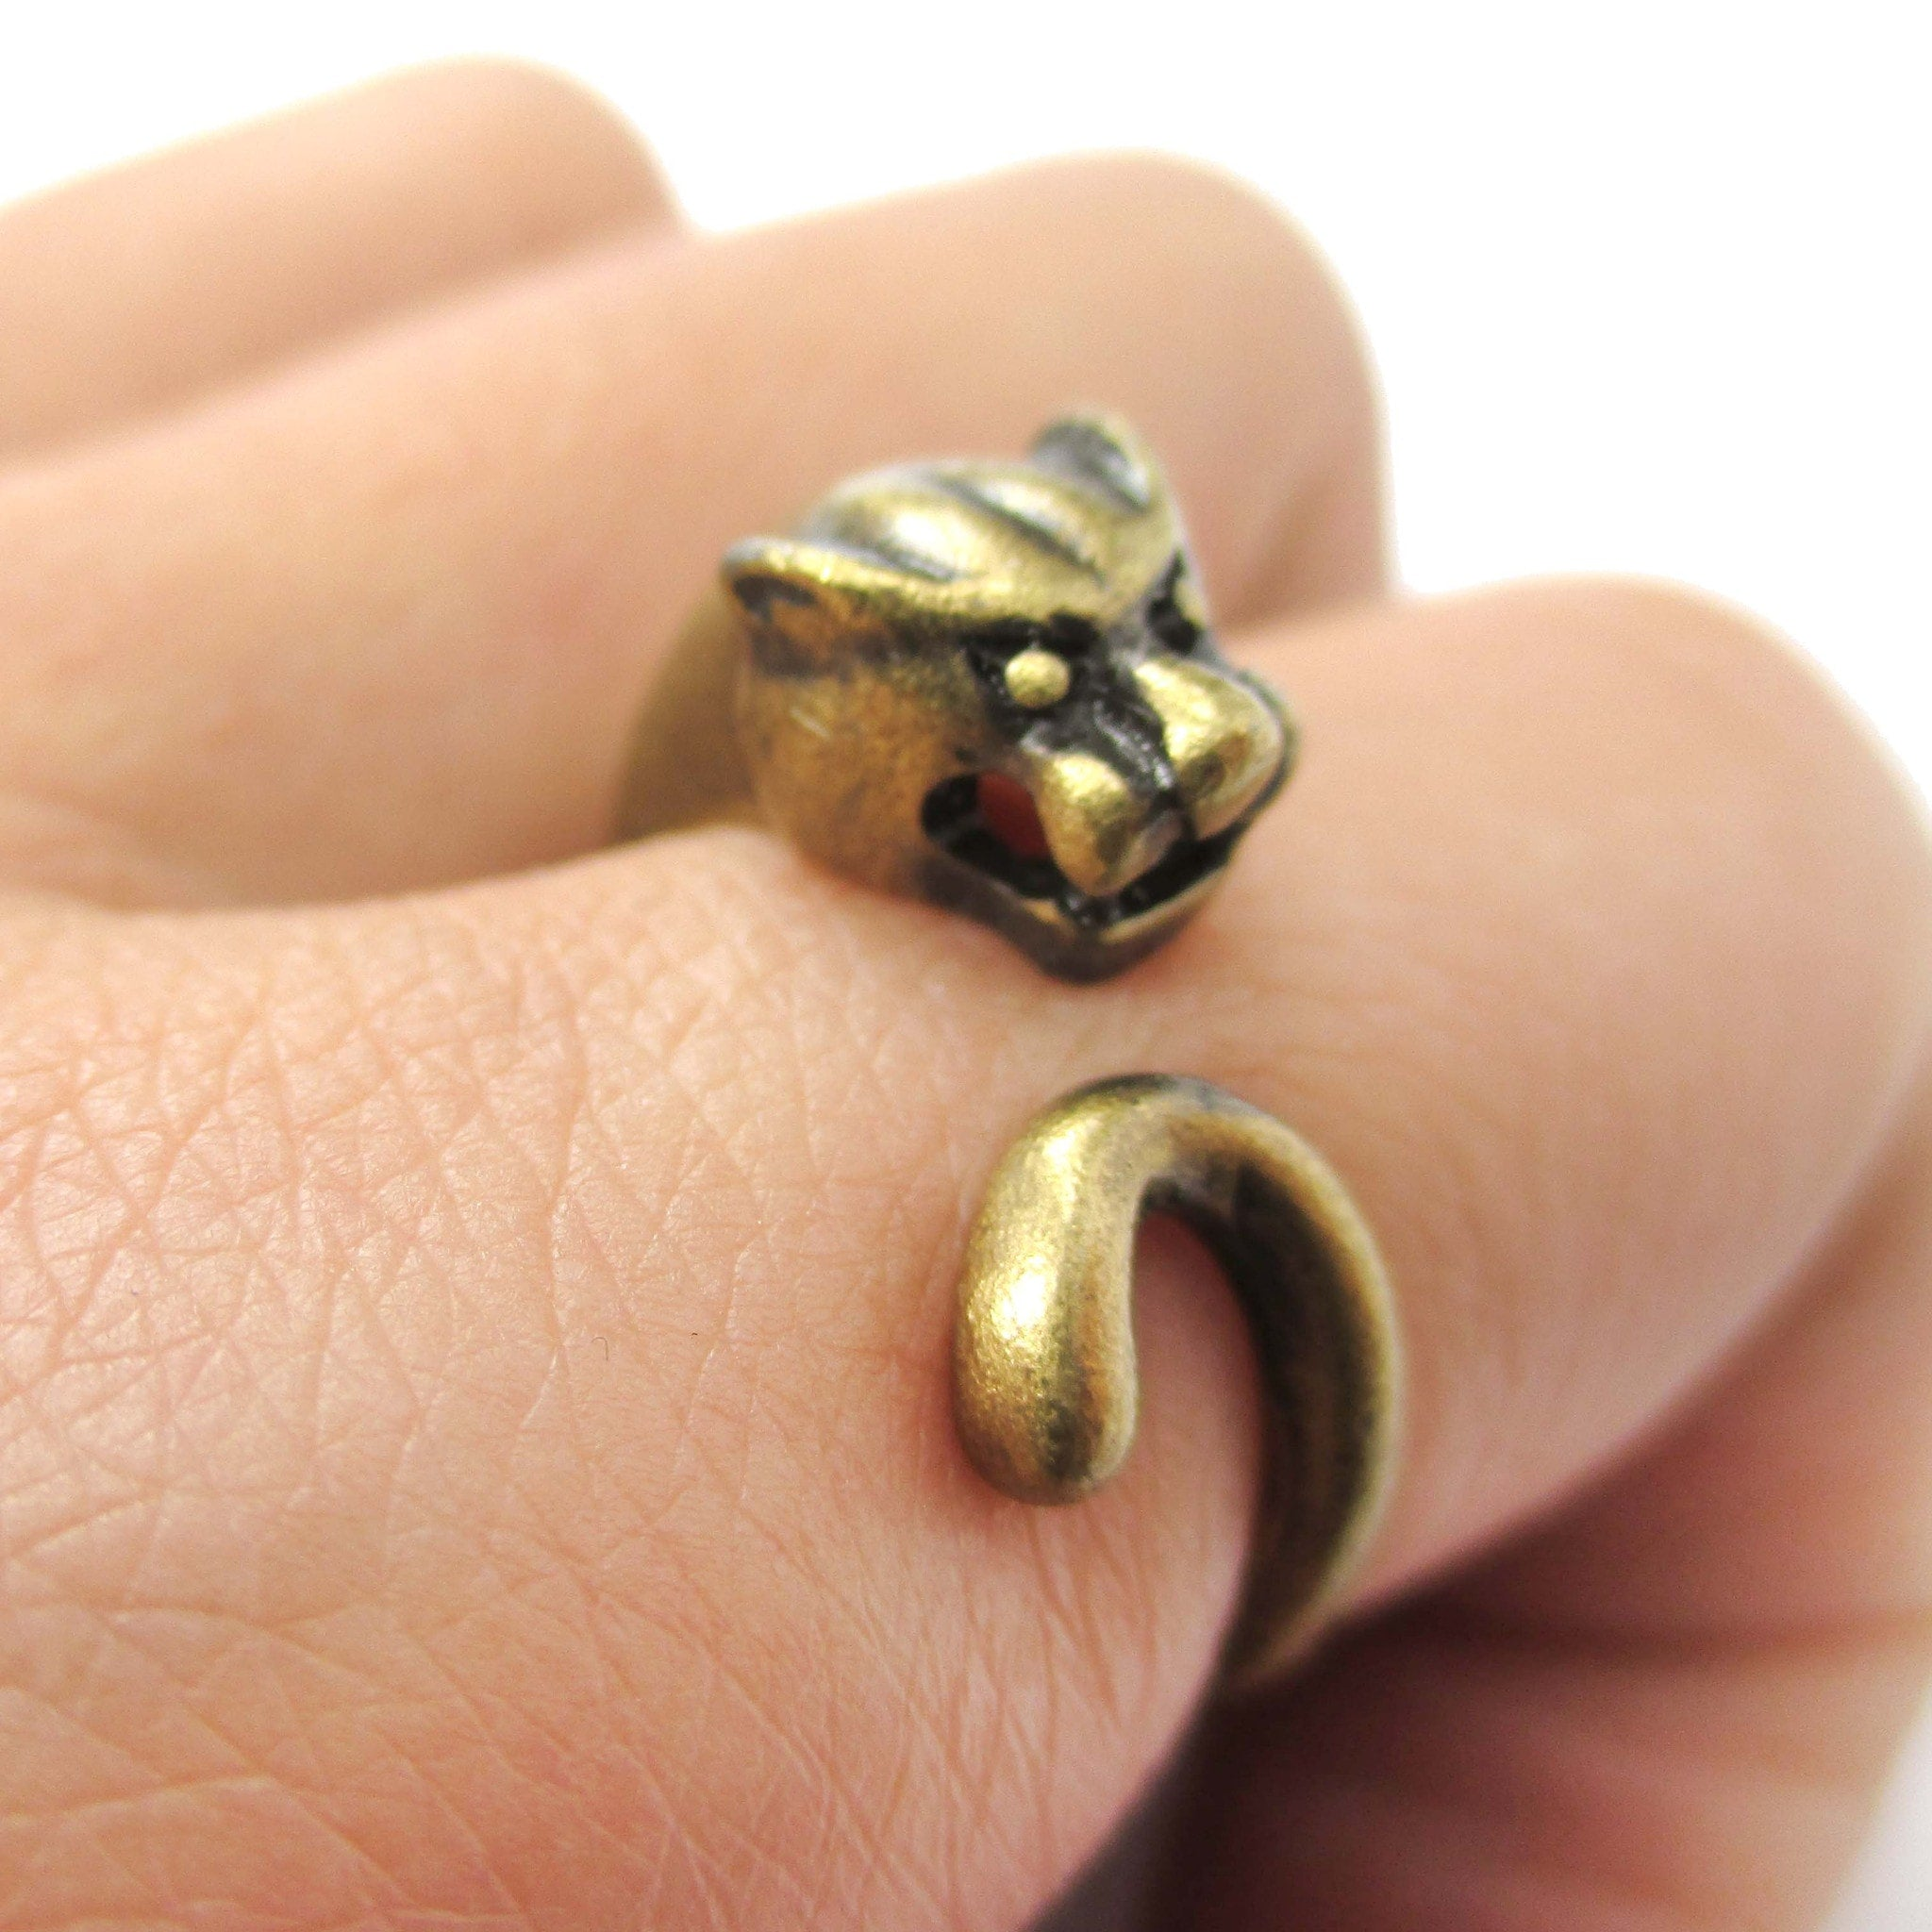 Mountain Lion Cougar Puma Shaped Animal Wrap Ring